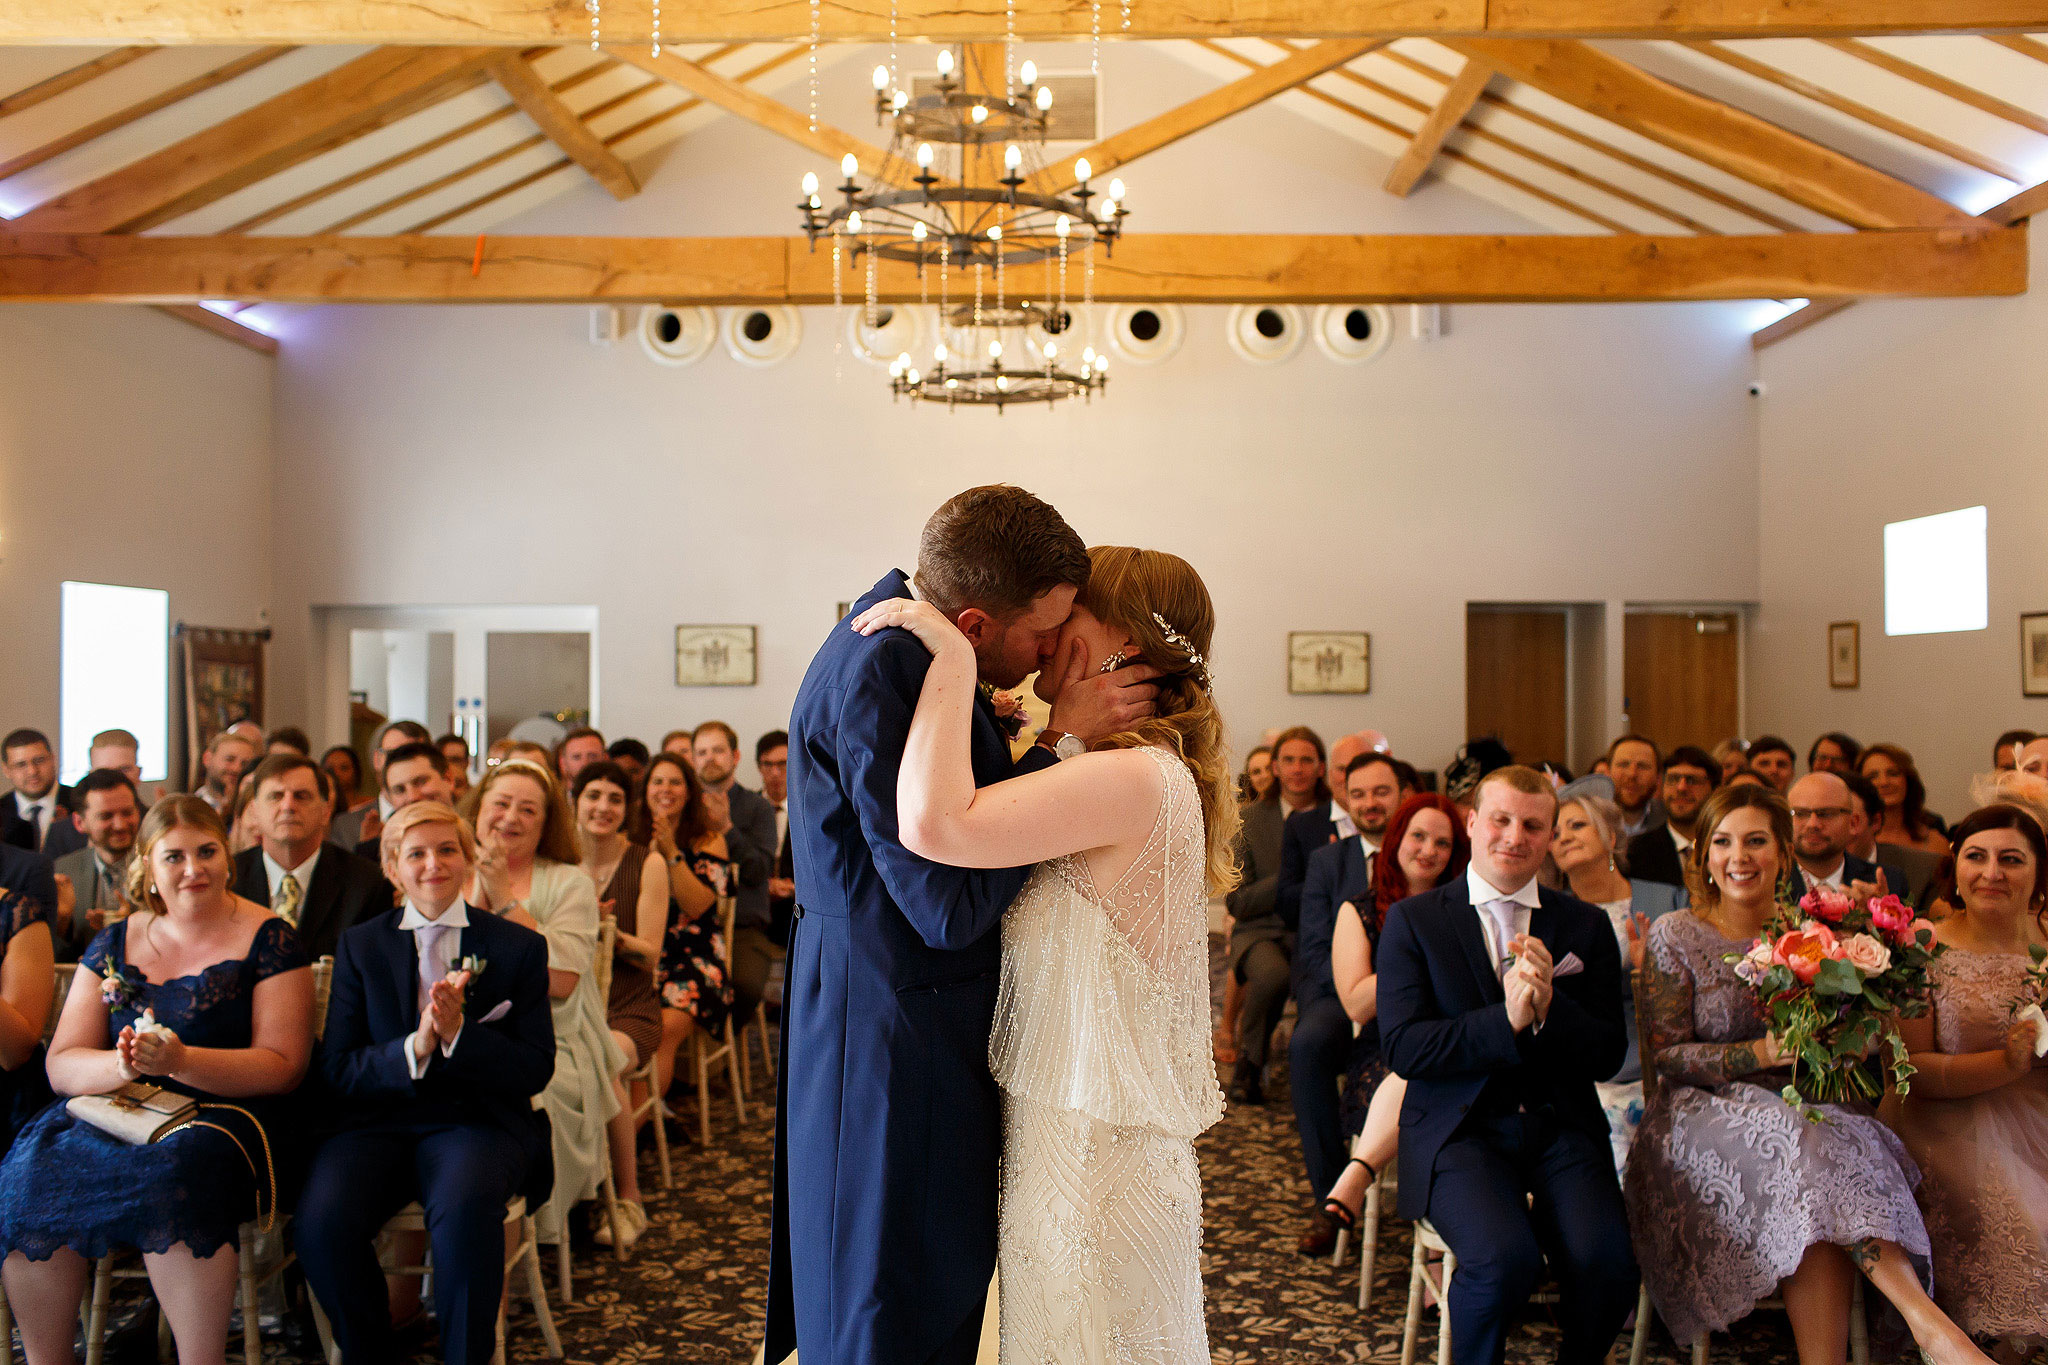 Bride and Grooms first kiss during wedding ceremony - The Villa at Wrea Green Wedding Photography - Toni Darcy Photography